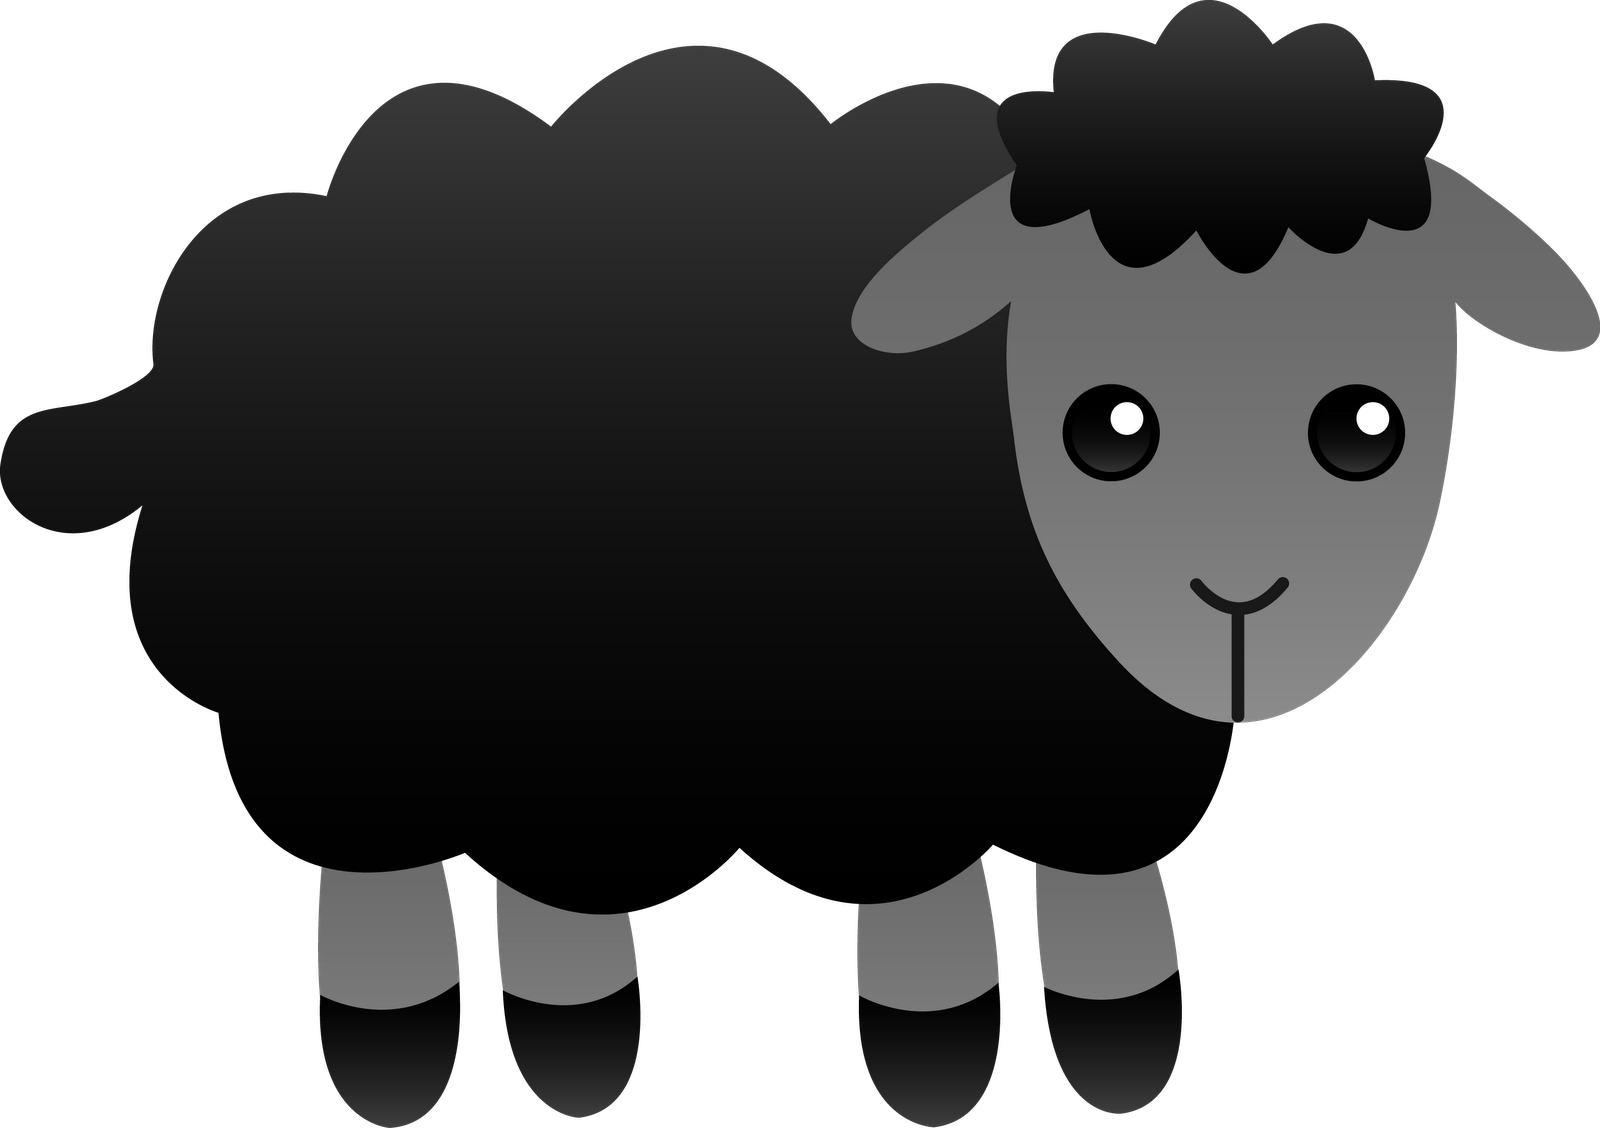 torpedo the ark separating the black sheep from the scapegoats rh torpedotheark blogspot com baa baa black sheep clipart black sheep clipart graphics